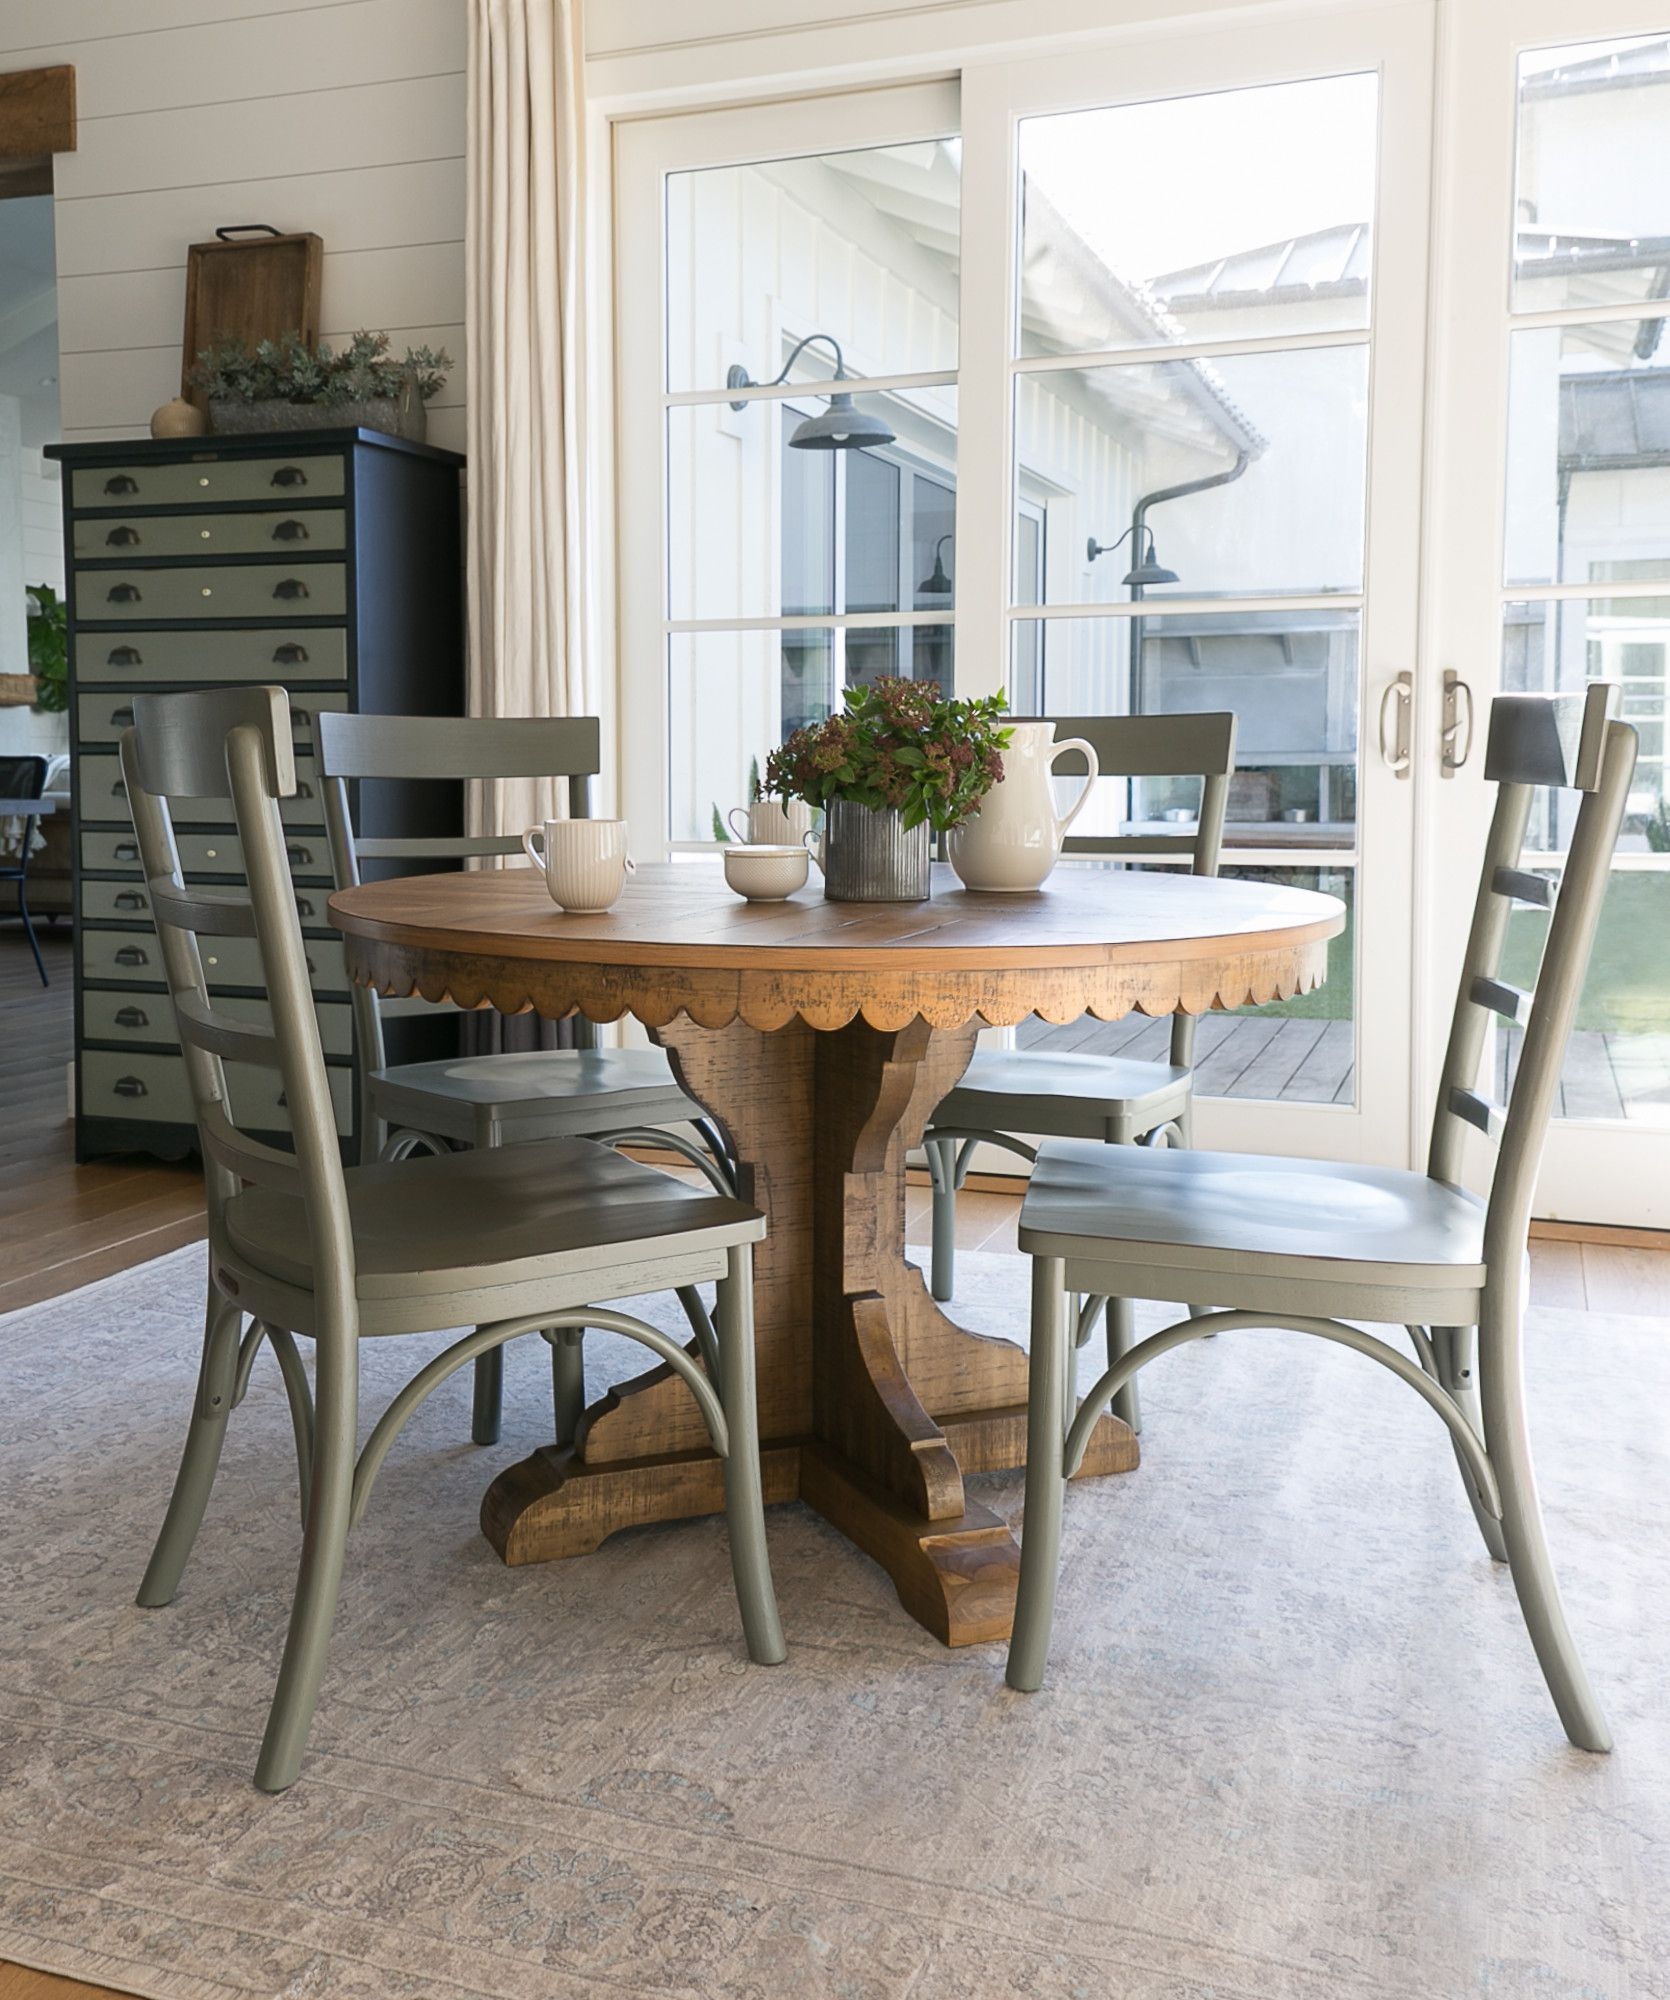 Magnolia Home Top Tier Round Dining Table By Joanna Gaines Small